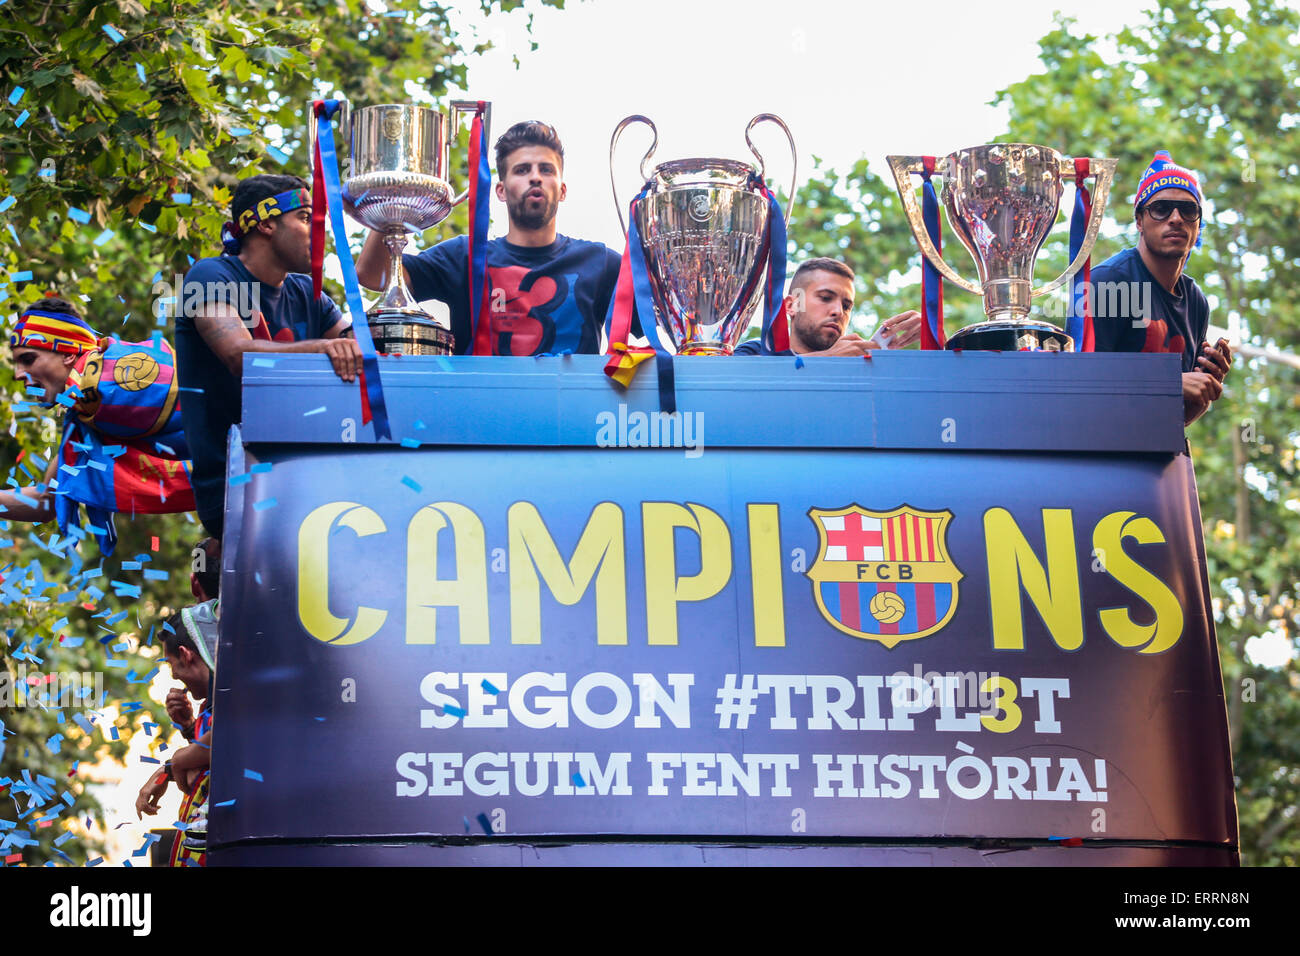 barcelona spain 7th june 2015 fc barcelona s players on a bus stock photo alamy https www alamy com stock photo barcelona spain 7th june 2015 fc barcelonas players on a bus celebrate 83500165 html